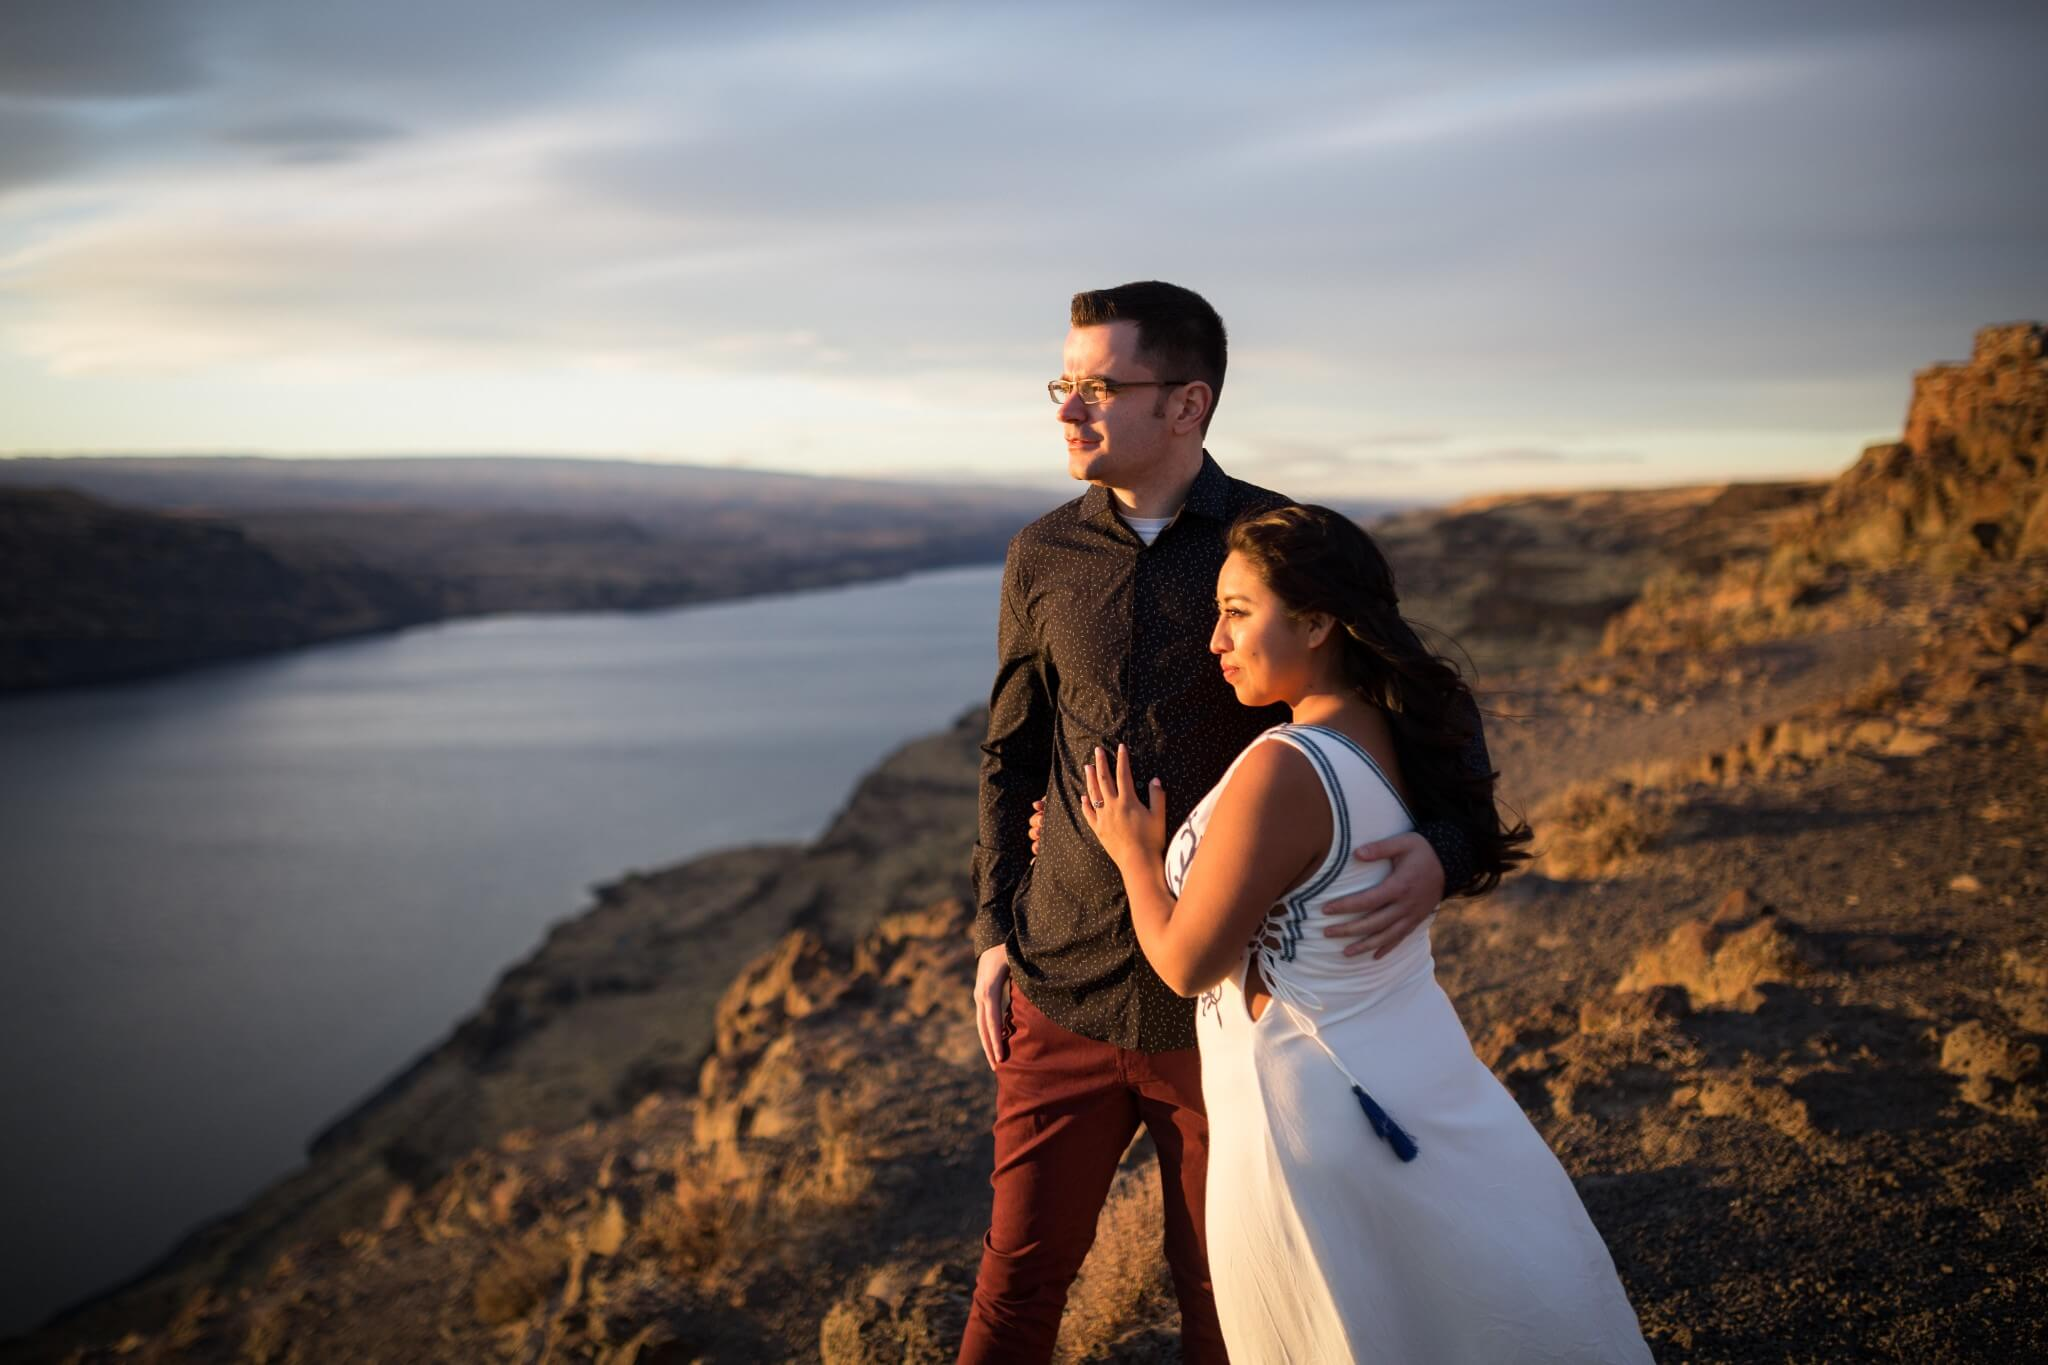 Lesly & Michael Vantage Engagement by Bill Weisgerber Spokane Photographer (52 of 71).jpg